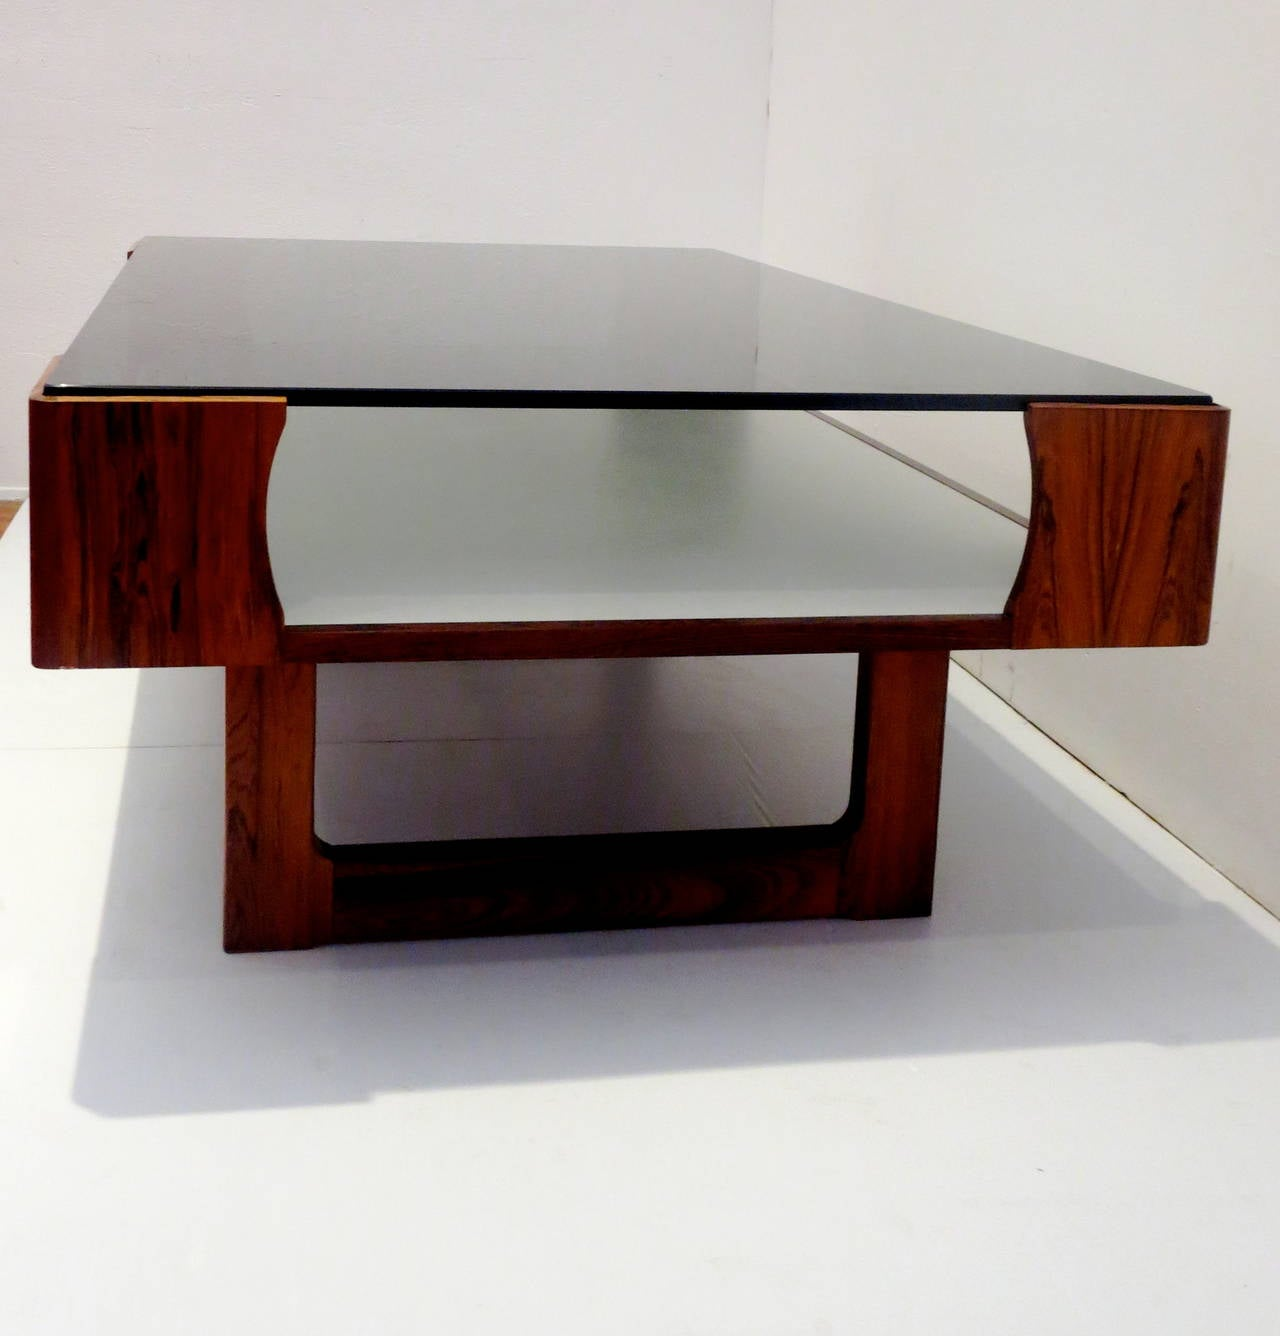 Https 1stdibs Com Furniture Tables Coffee Tables Cocktail Tables 1970s Rosewood Coffee Table Display Case Attributed To Milo Baughman Id F 2107502